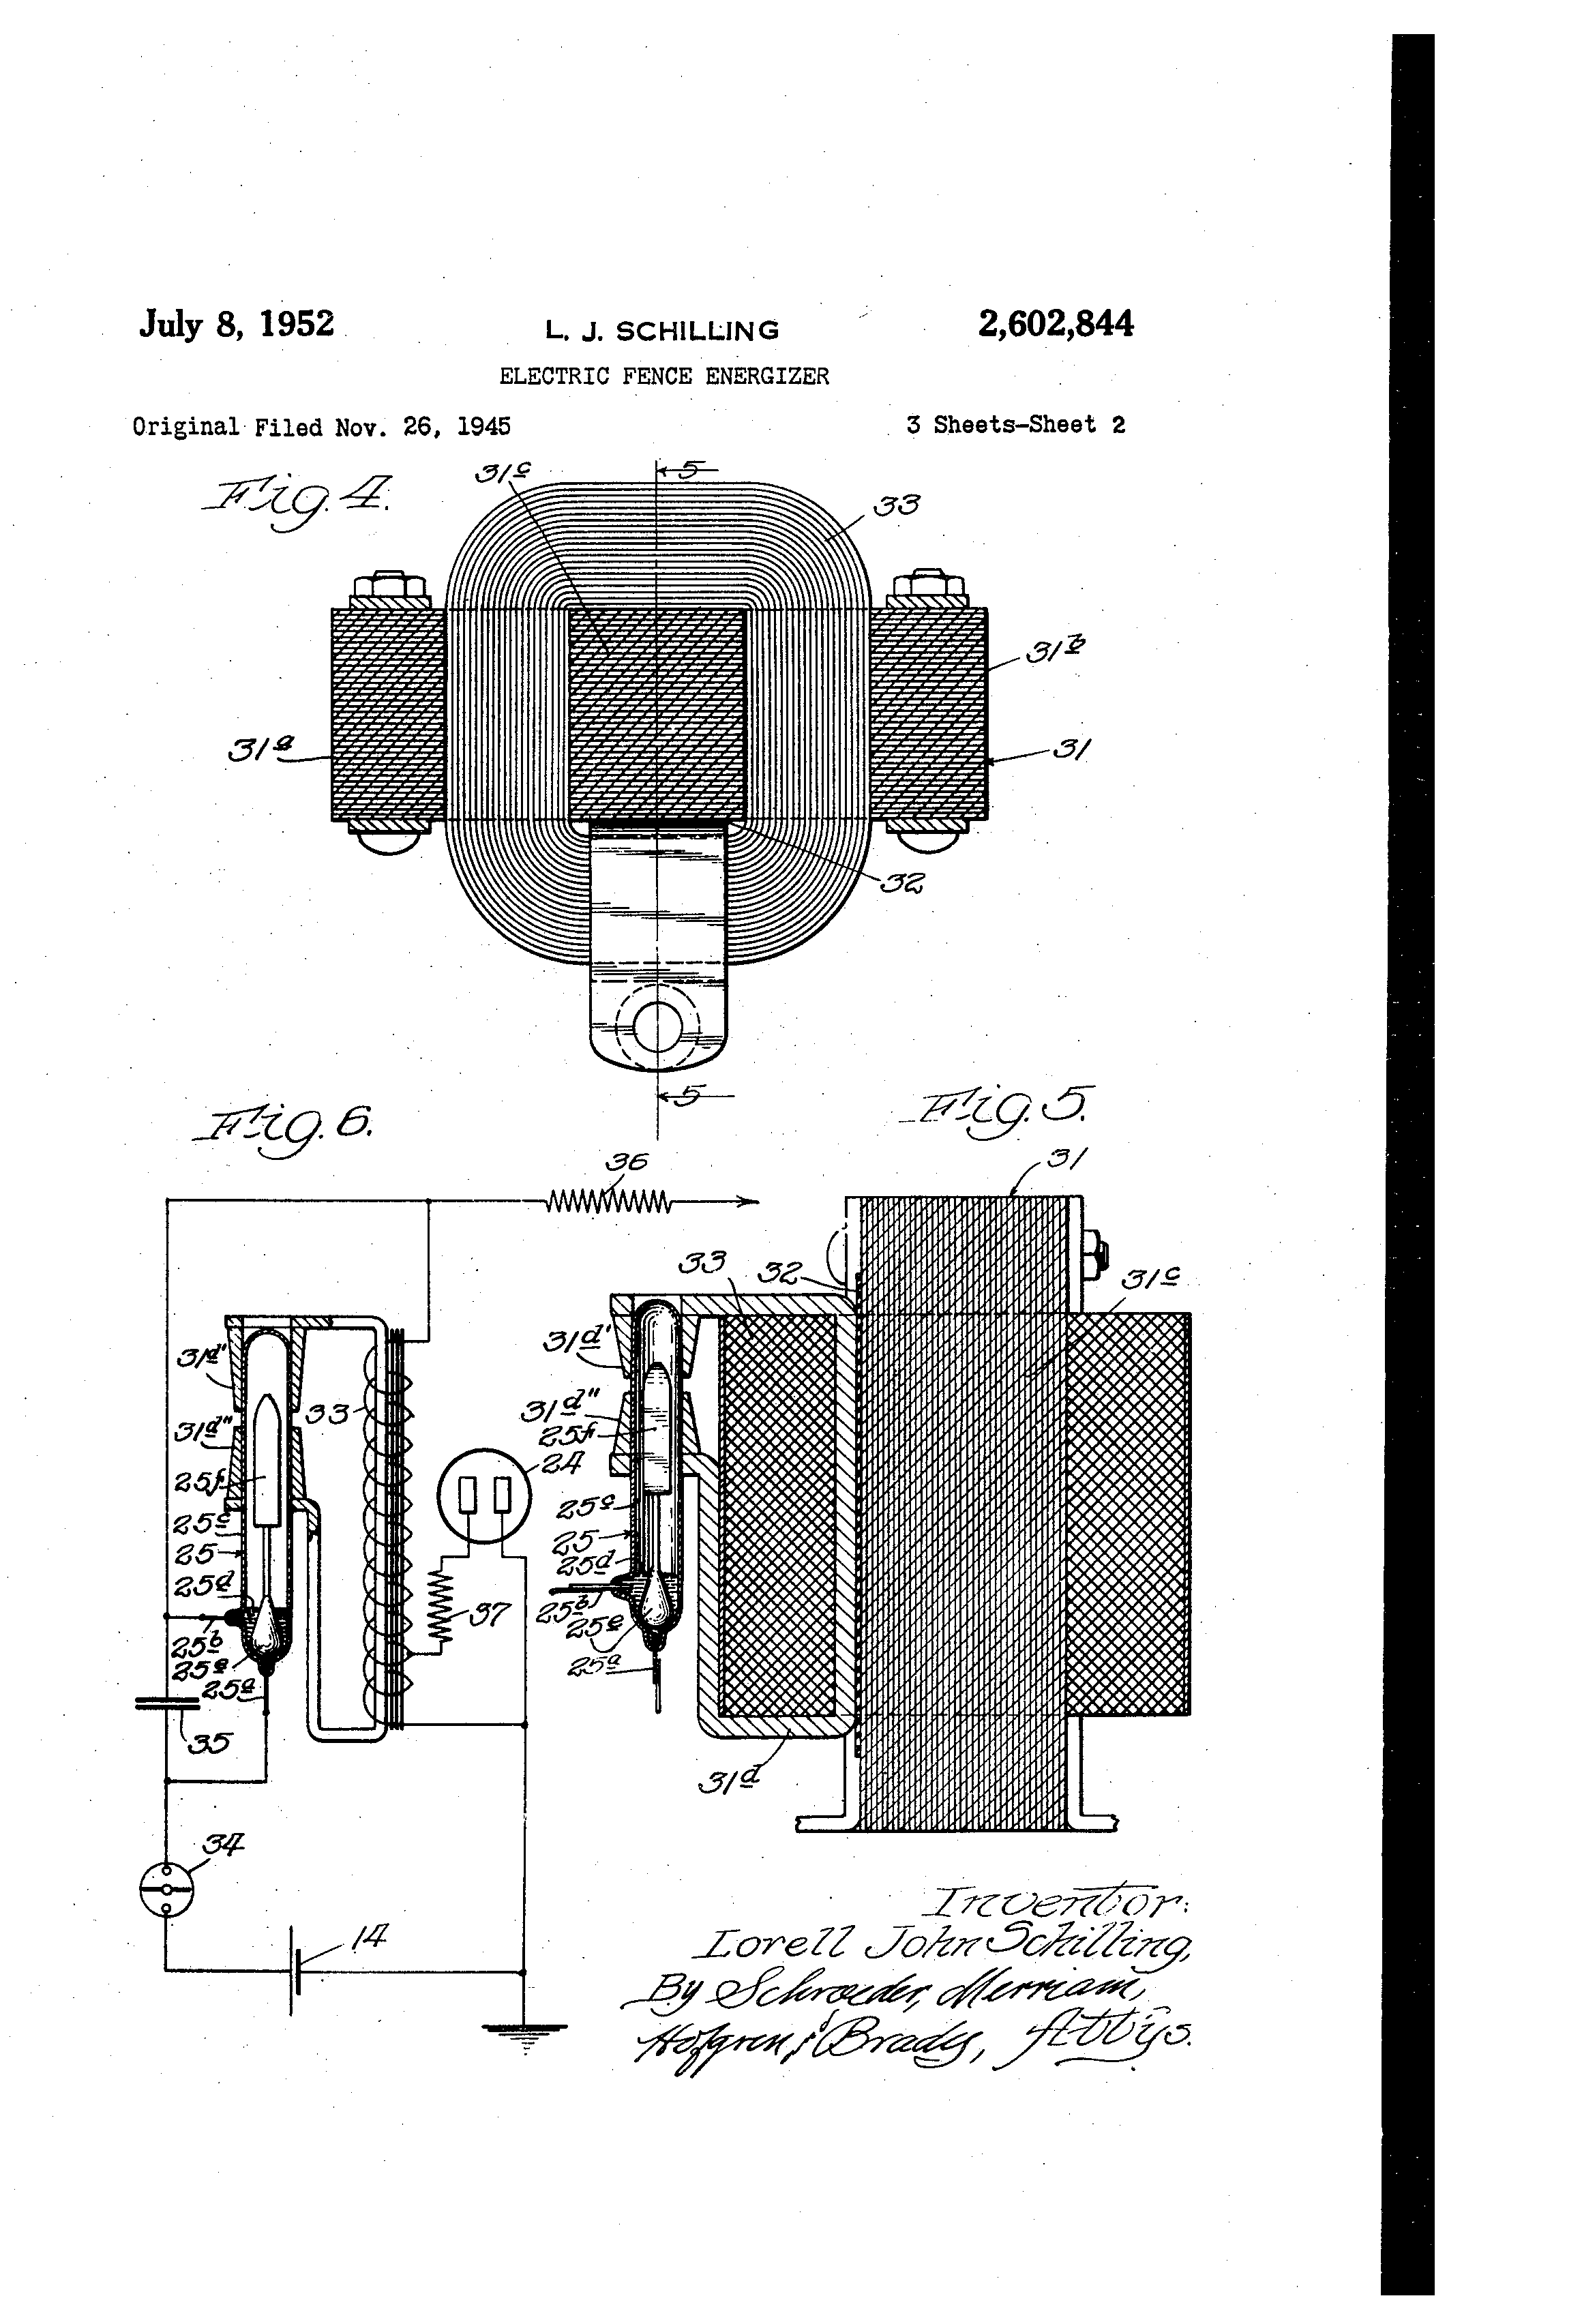 Sing El Wire Electric Fence Circuit Diagram Wiring Library Schematic On For Patent Drawing Us2602844